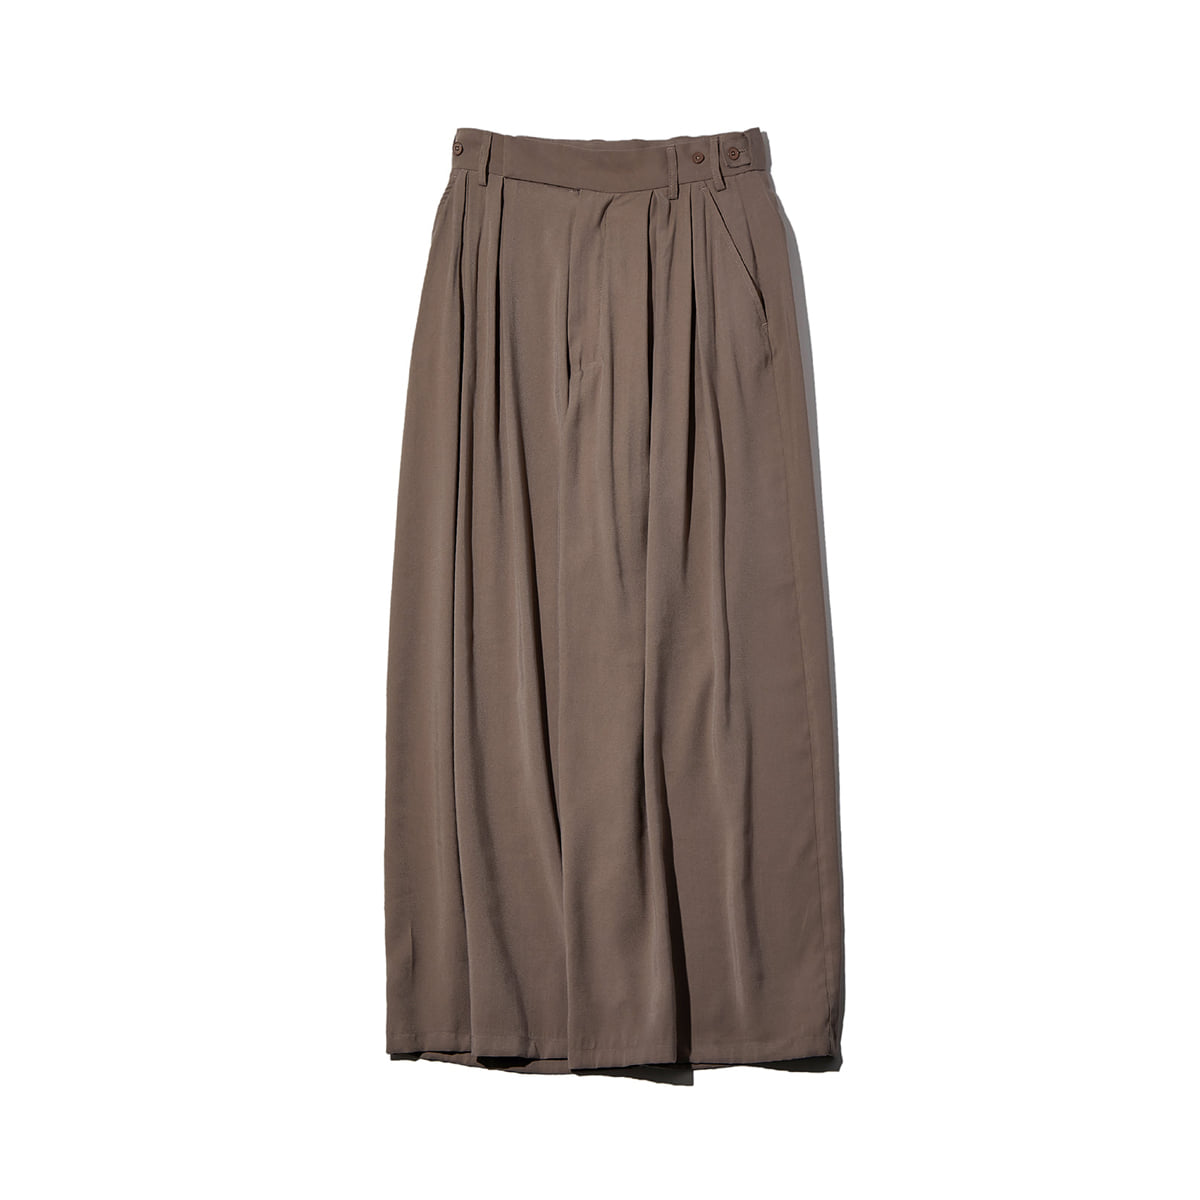 [NEITHERS] 353B-1 2-TUCK WIDE PANTS 'BEIGE'